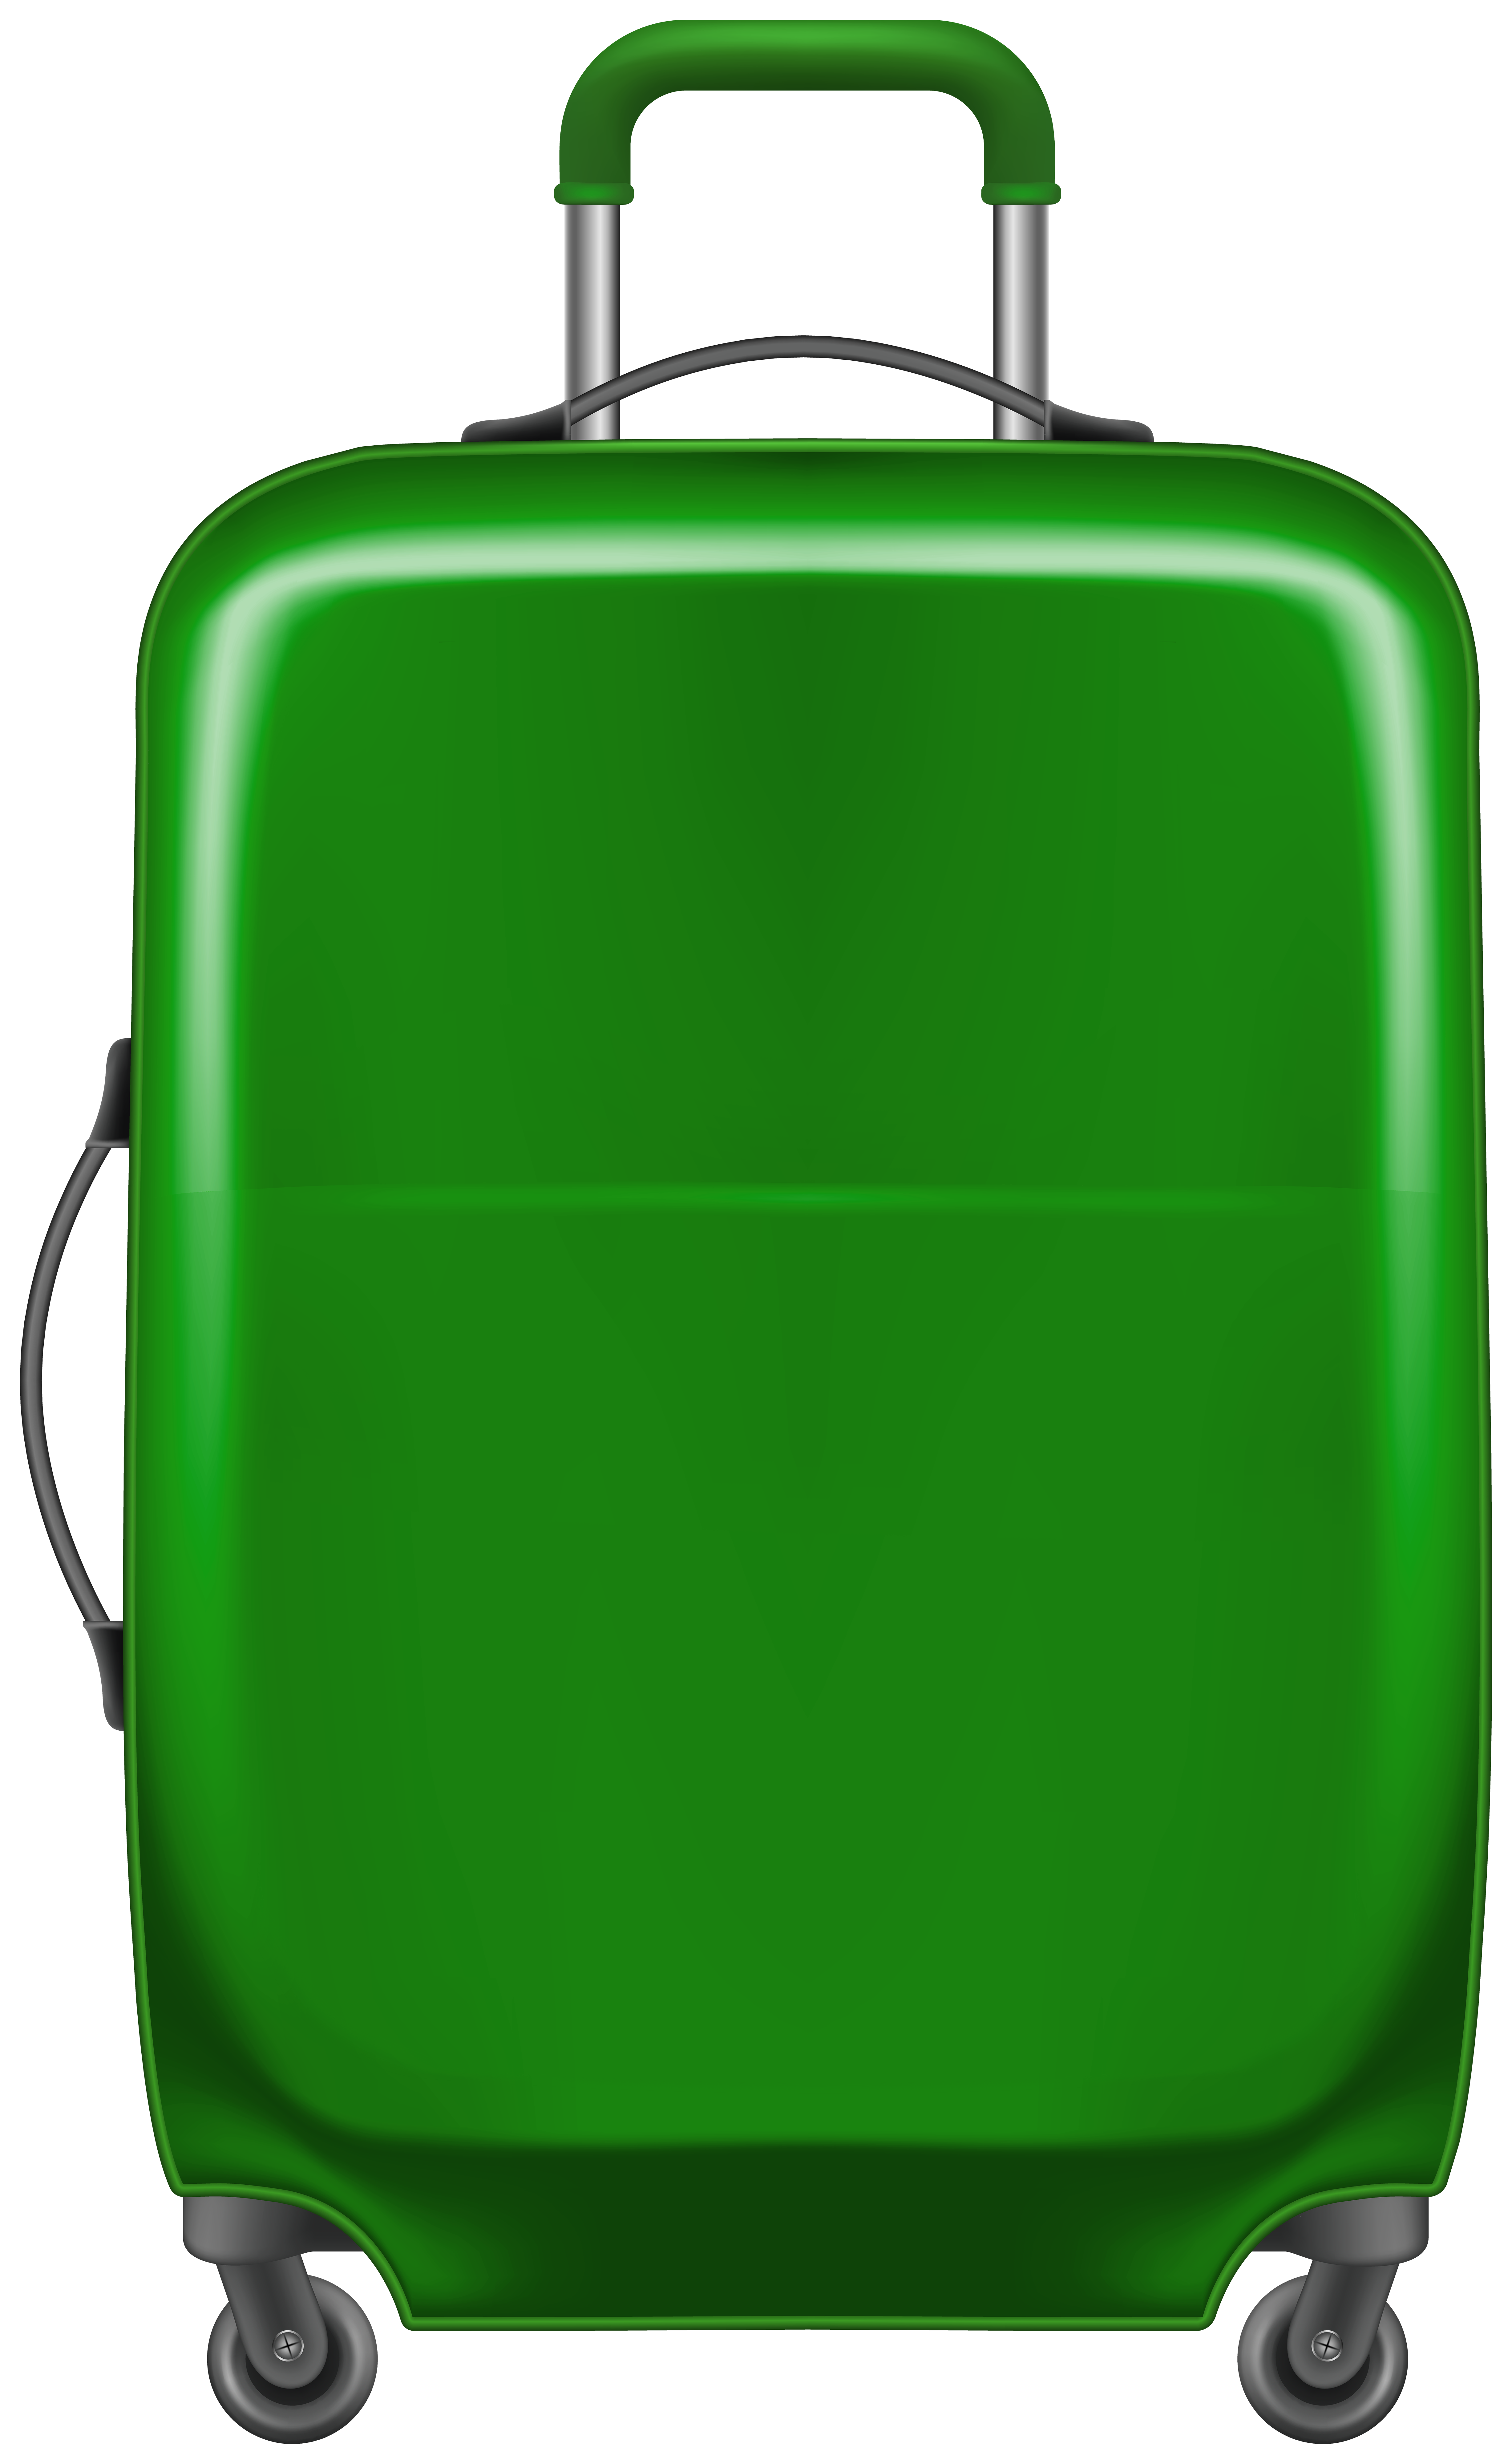 Luggage clipart green suitcase. Trolley bag png gallery